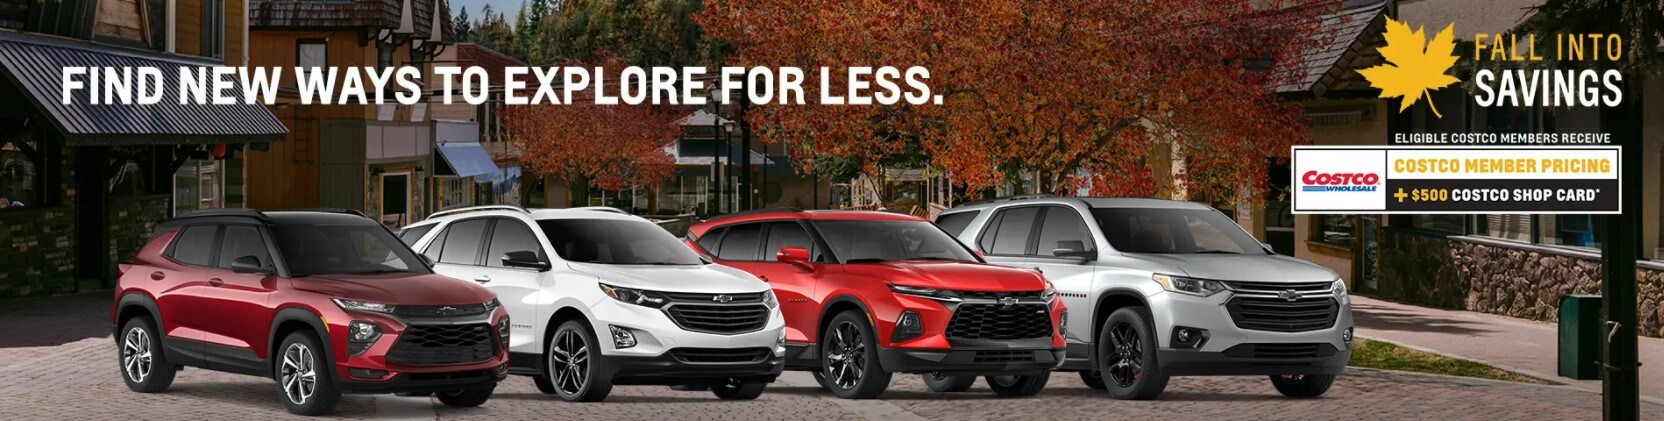 Eligible Costco Members receiv member pricing plus $500 costco shop card on select 2019 and 2020 models